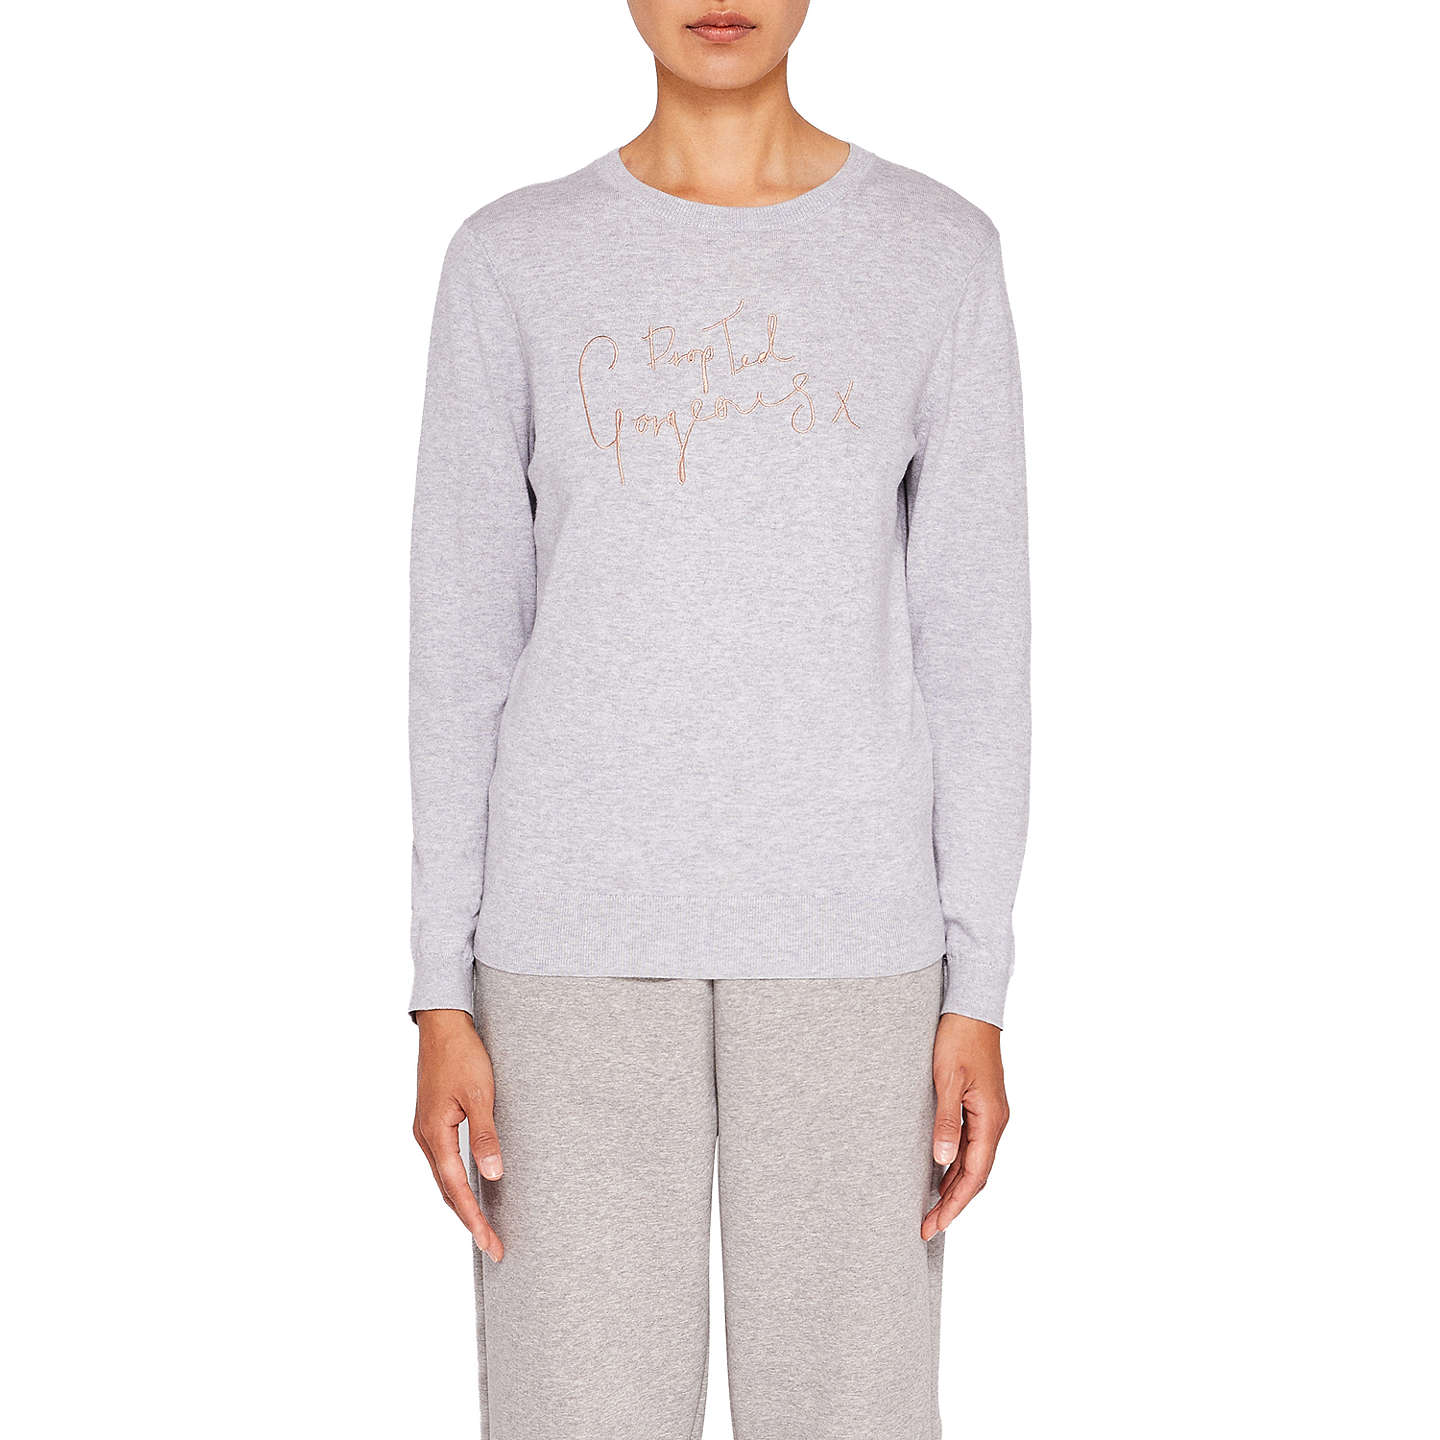 BuyTed Baker Ted Says Relax Leena Drop Ted Gorgeous Jumper, Light Grey, 0 Online at johnlewis.com